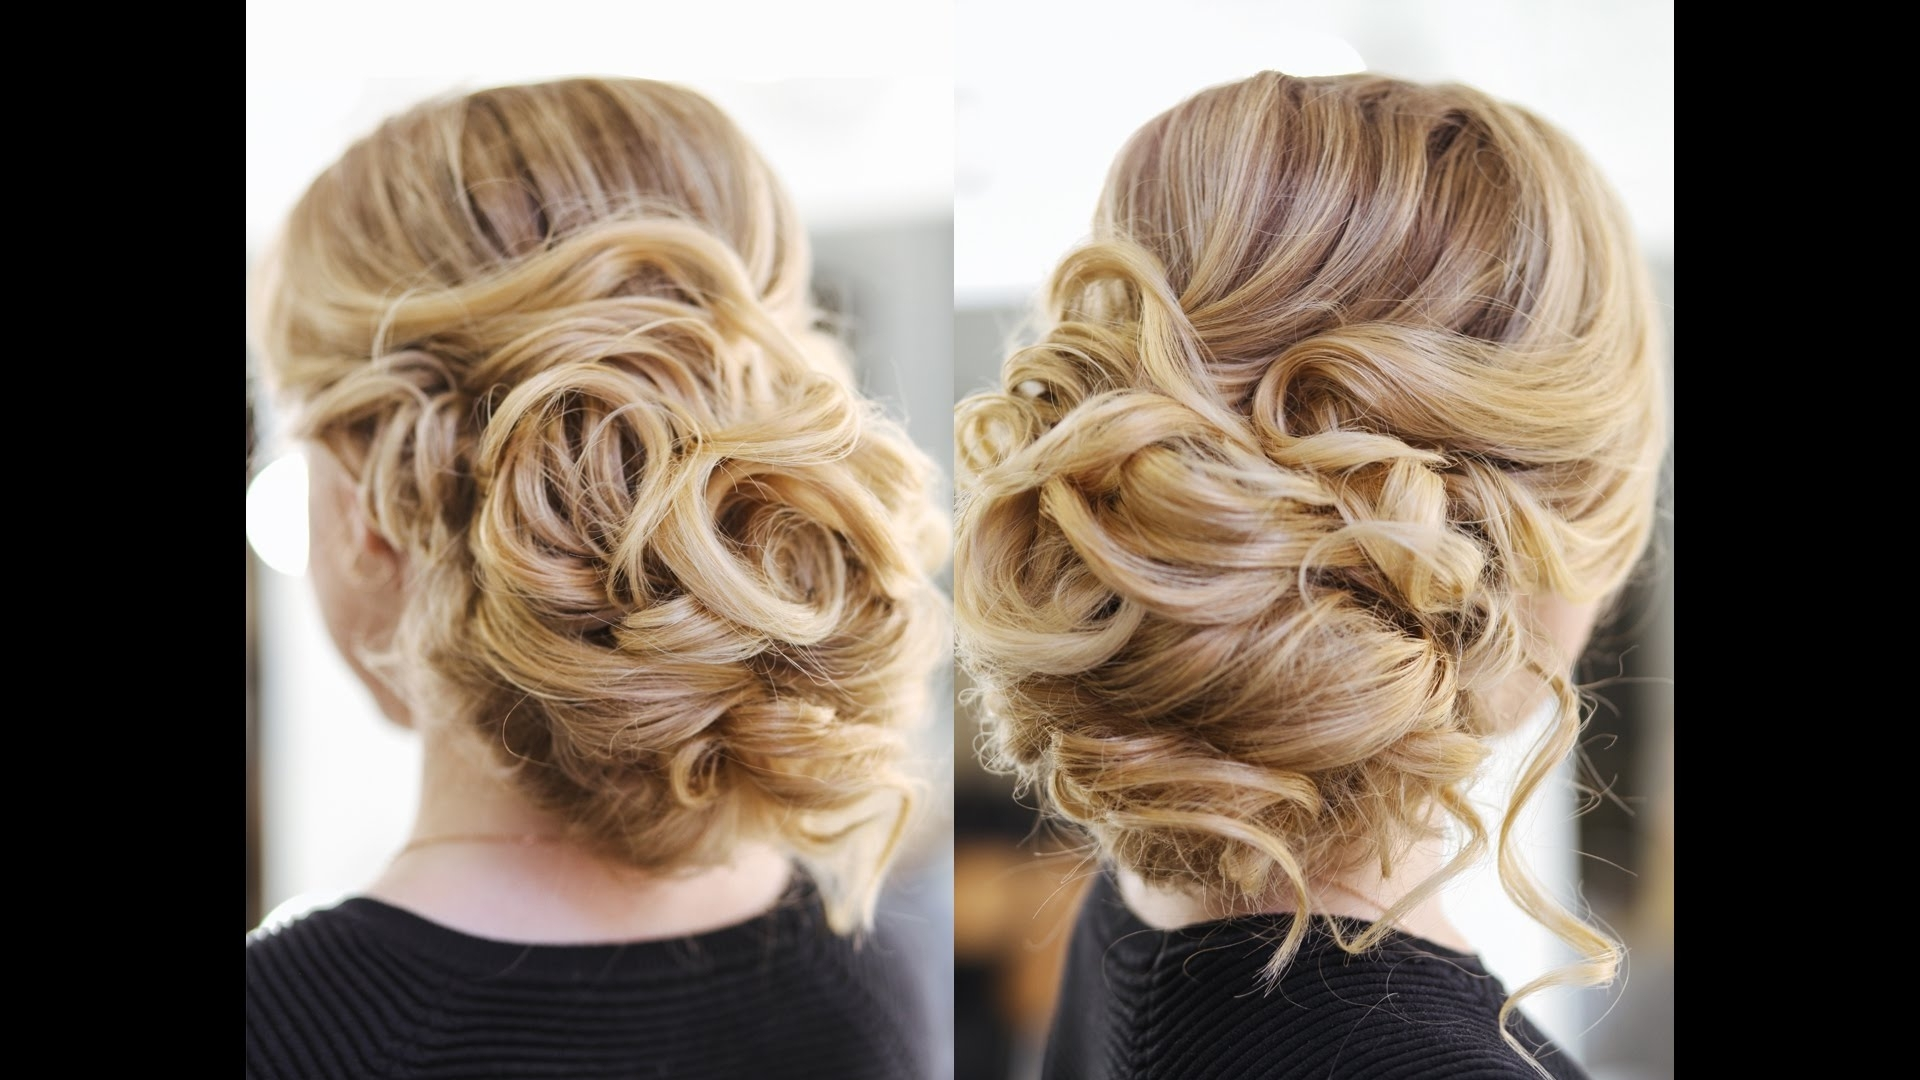 Easy Wedding Updo With Curls Prom Hairstyles Hair Tutorial – Youtube Pertaining To Preferred Updos With Curls Wedding Hairstyles (View 7 of 15)